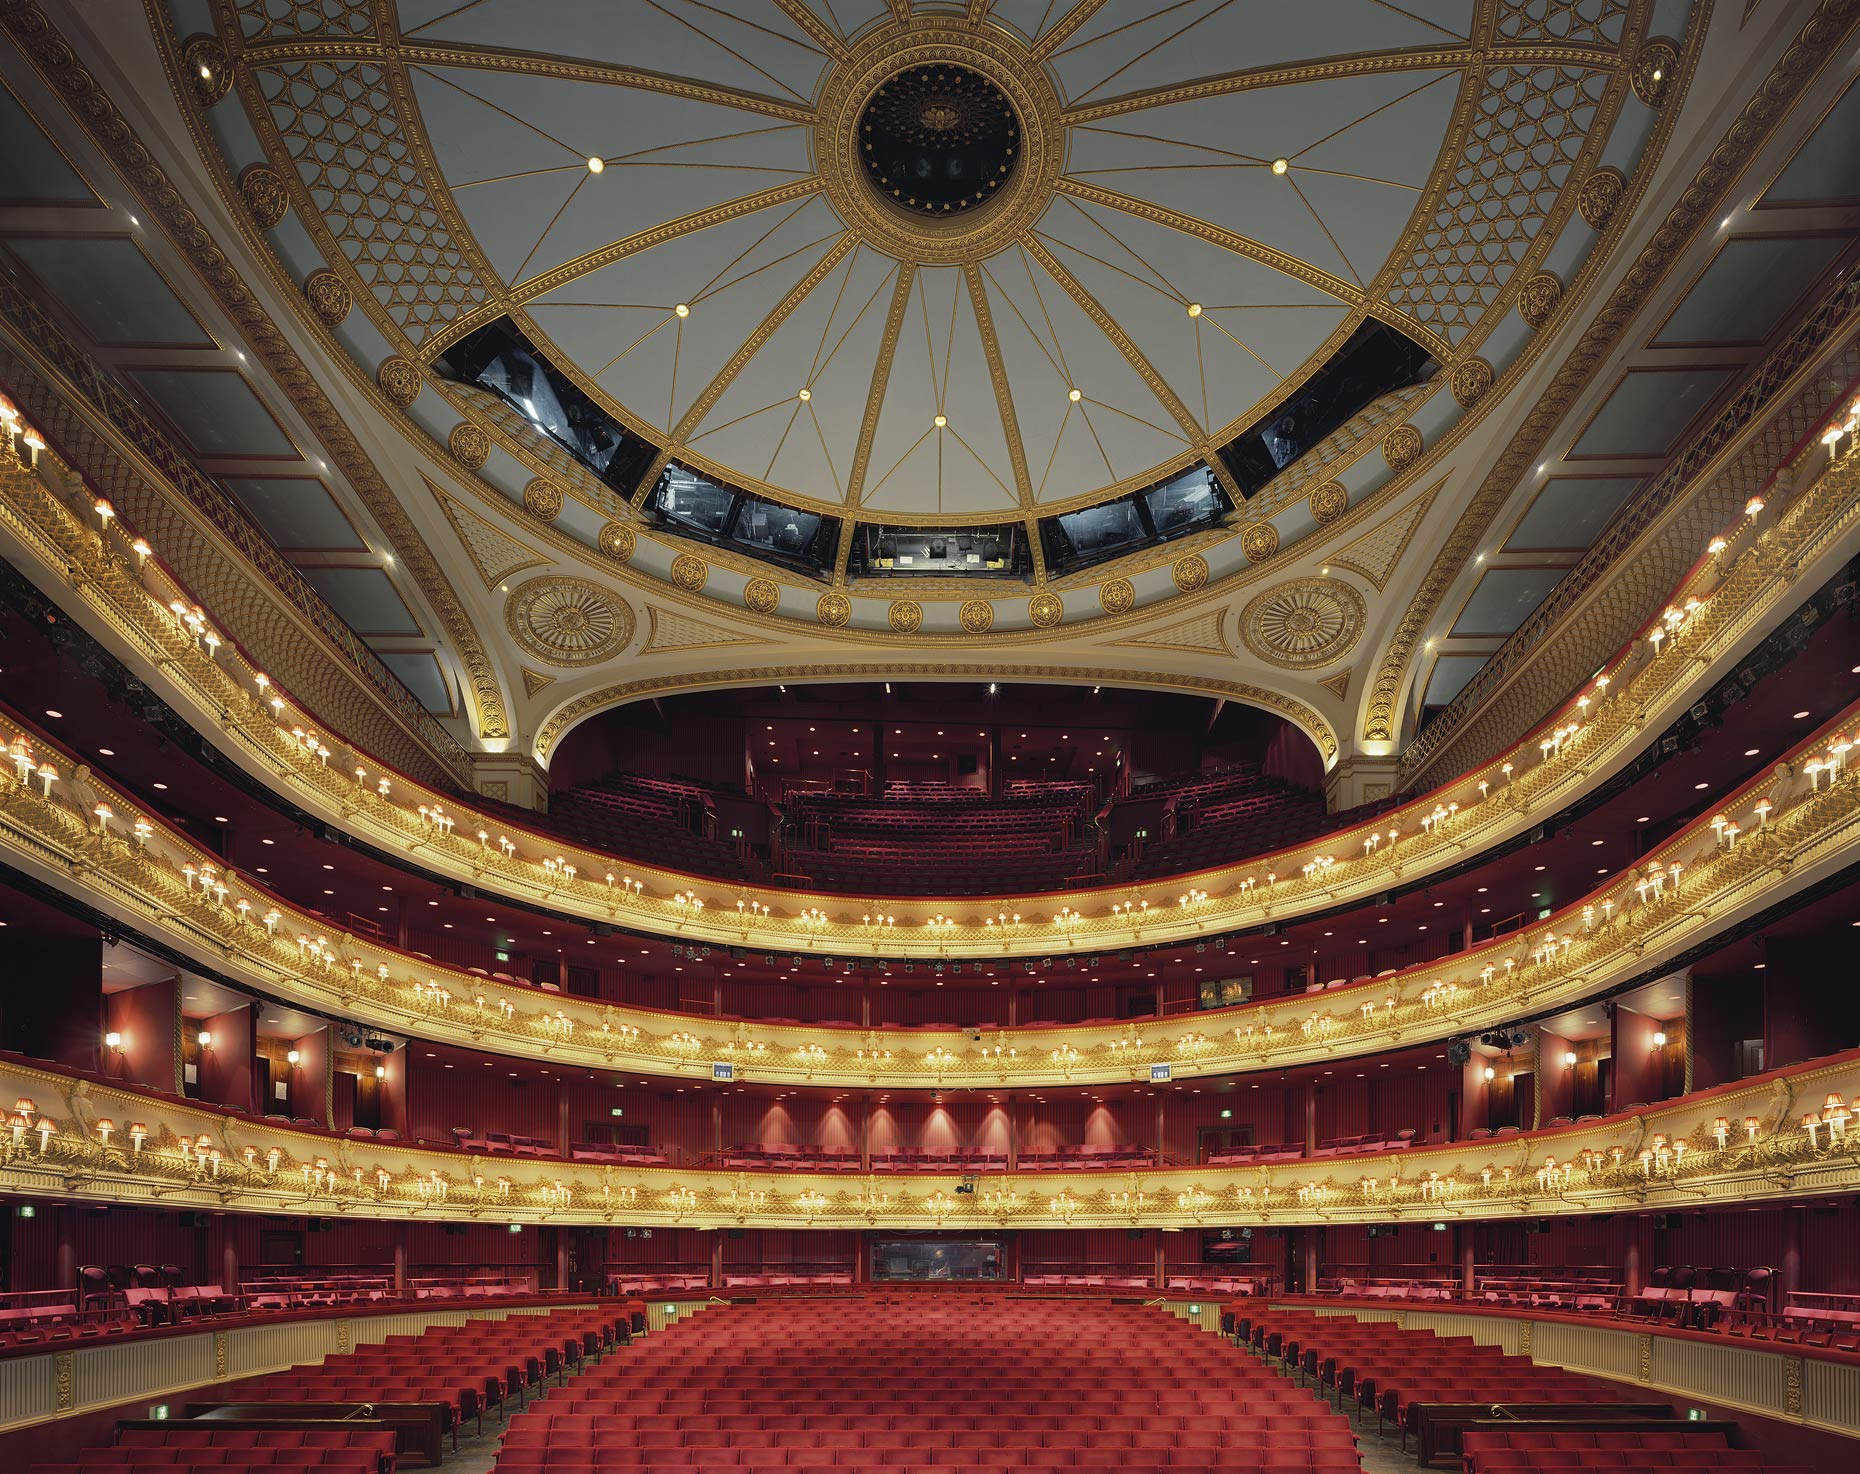 Royal Opera House, Covent Garden, London, Great Britain, 2008